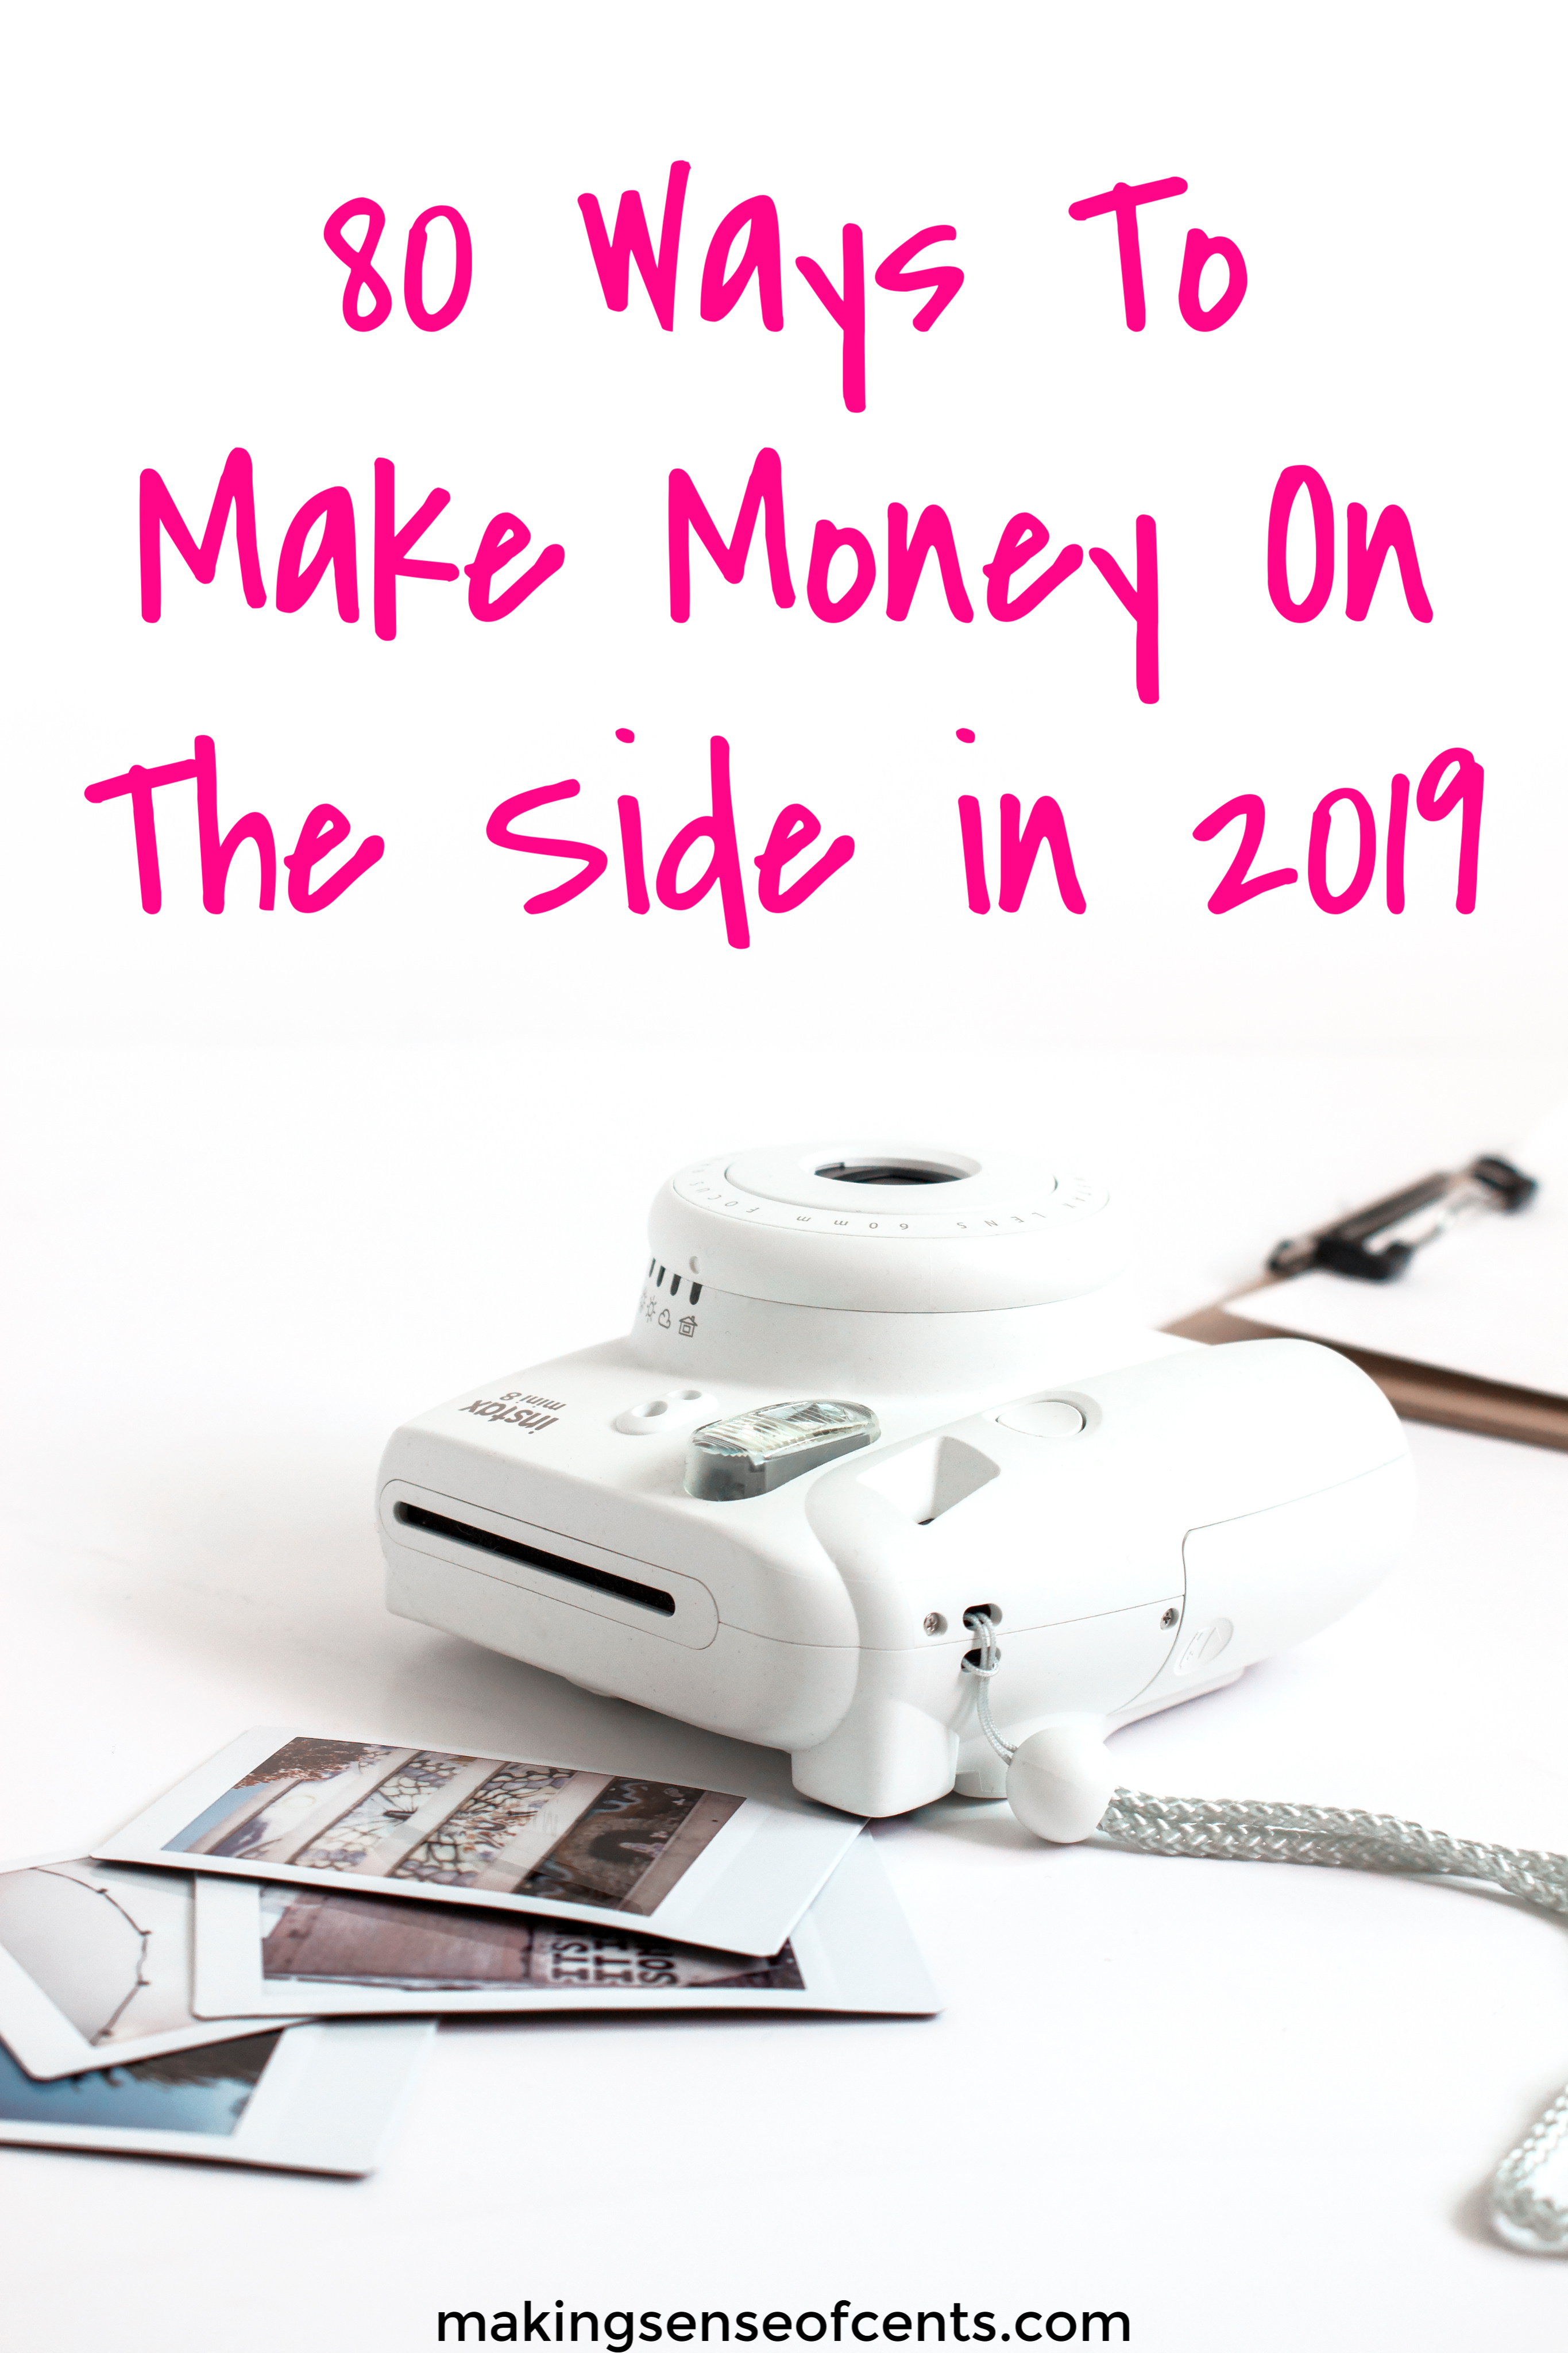 230e8fca 80 Ways To Make Money On The Side in 2019 - Making Sense Of Cents